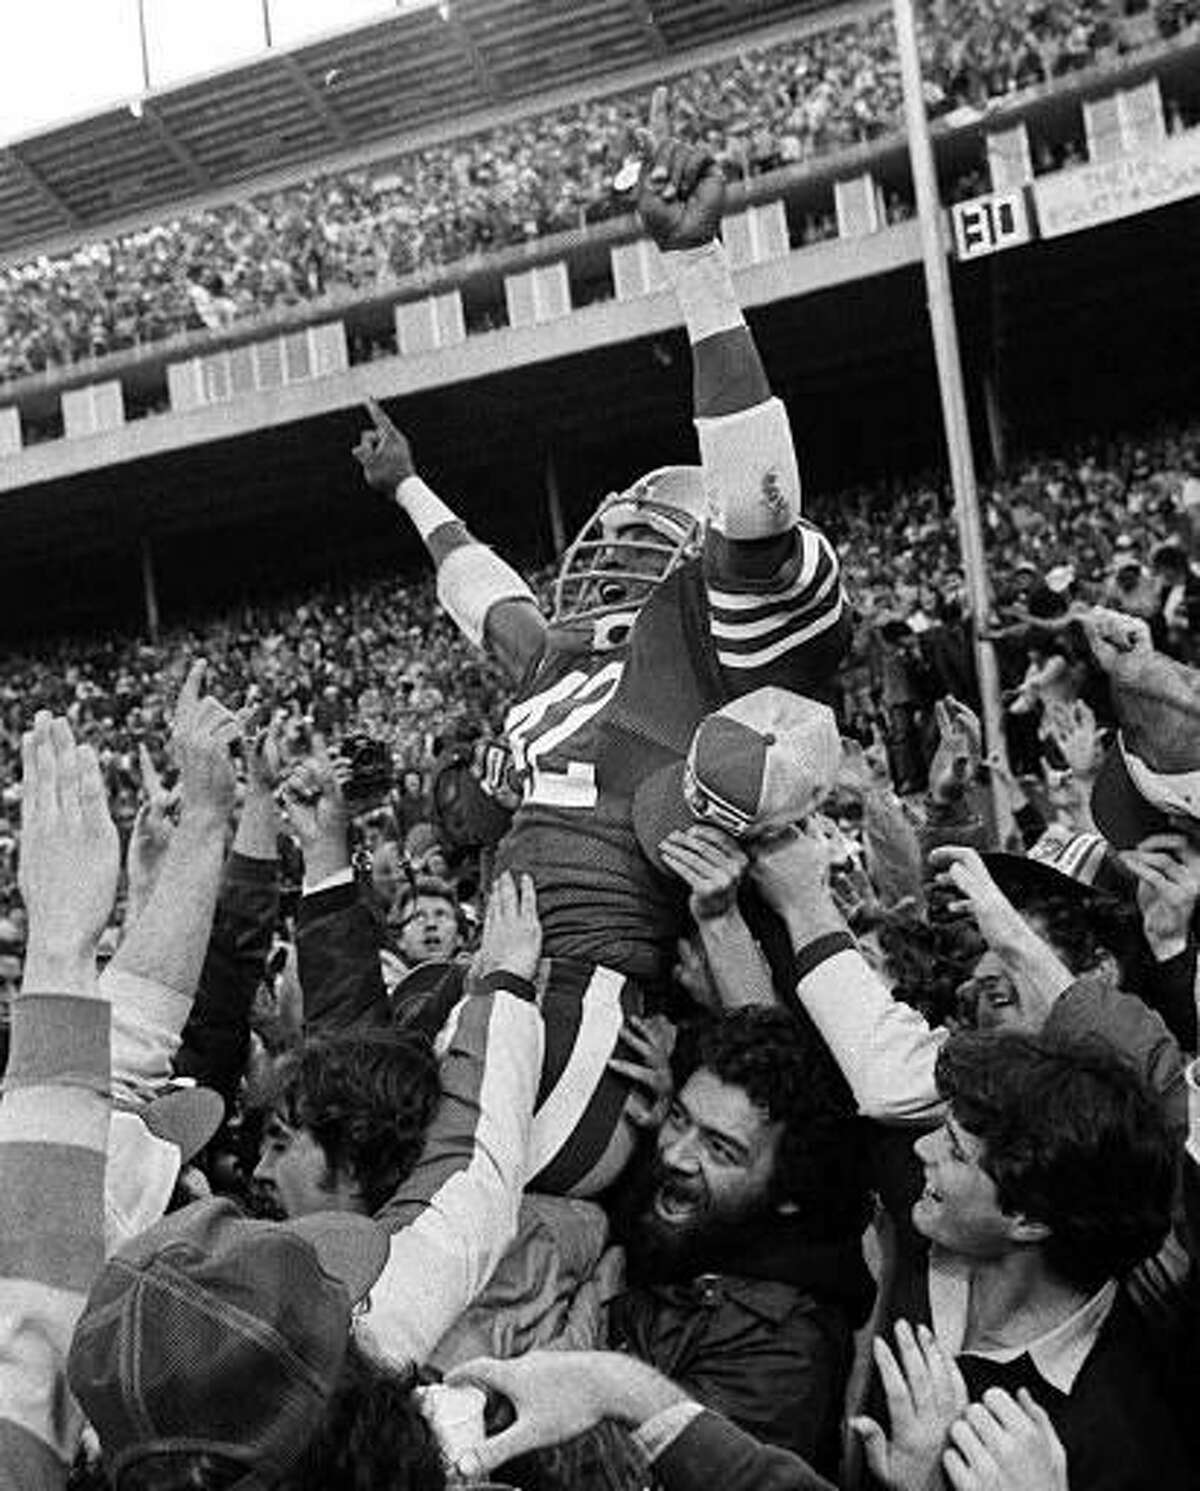 Niners fans carry Ronnie Lott off the field after the 49ers beat the New York Giants on Nov. 29, 1981, to clinch the NFC West title at Candlestick Park.